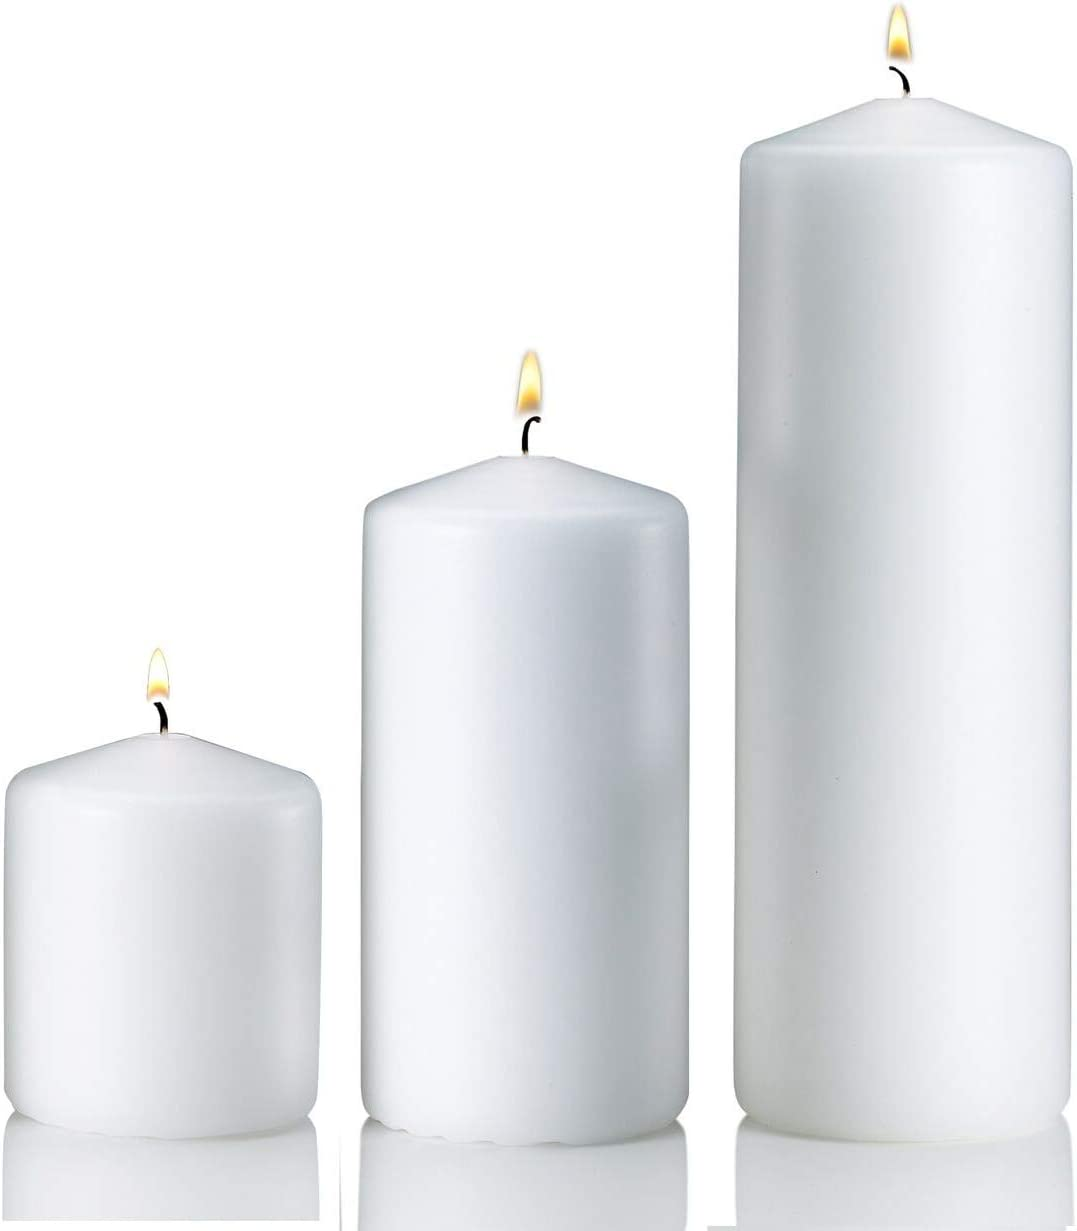 Amazon Com Light In The Dark White Pillar Candle Variety Set 3 White Unscented Pillar Candles Set Includes 3 6 And 9 Candles Home Kitchen